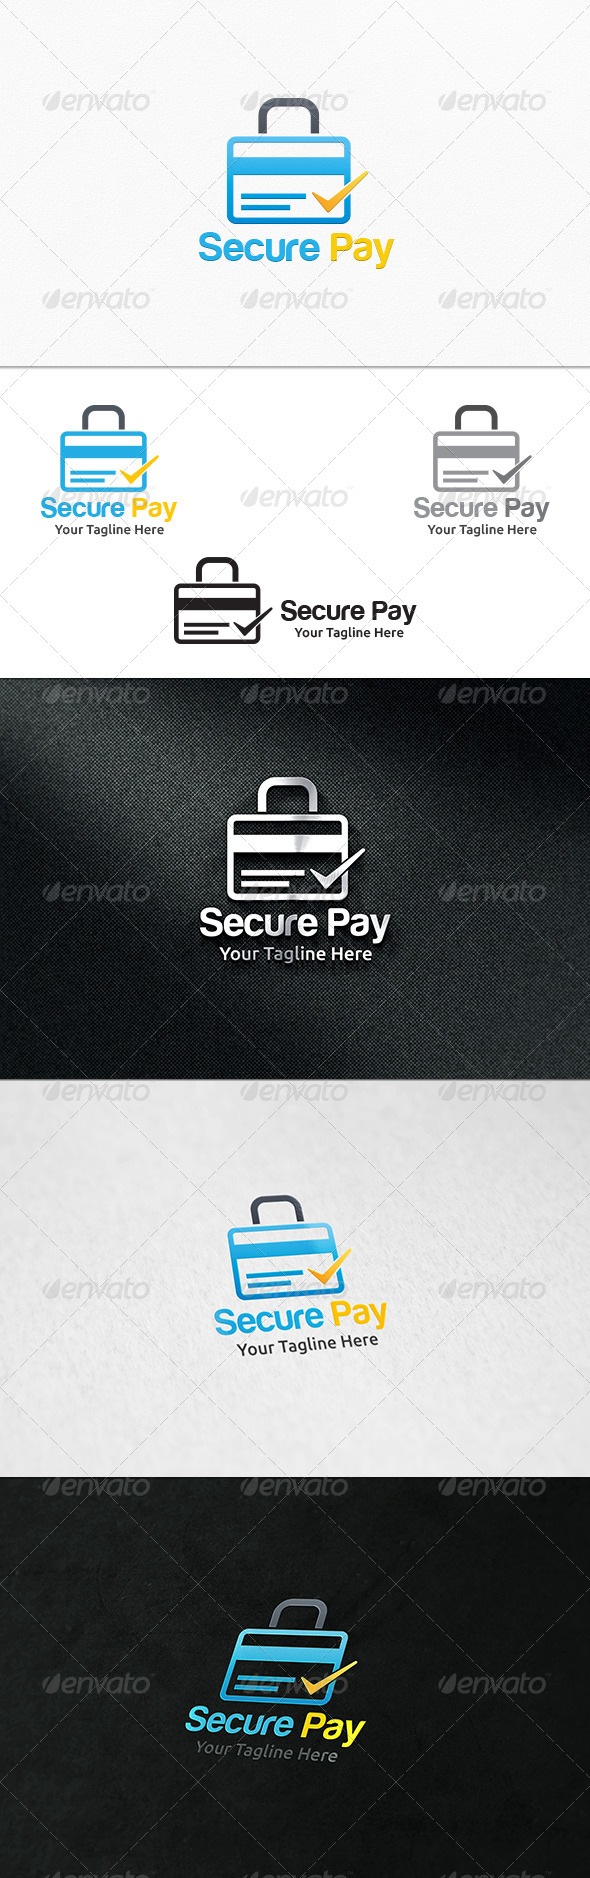 GraphicRiver Secure Pay Logo Template 7862847